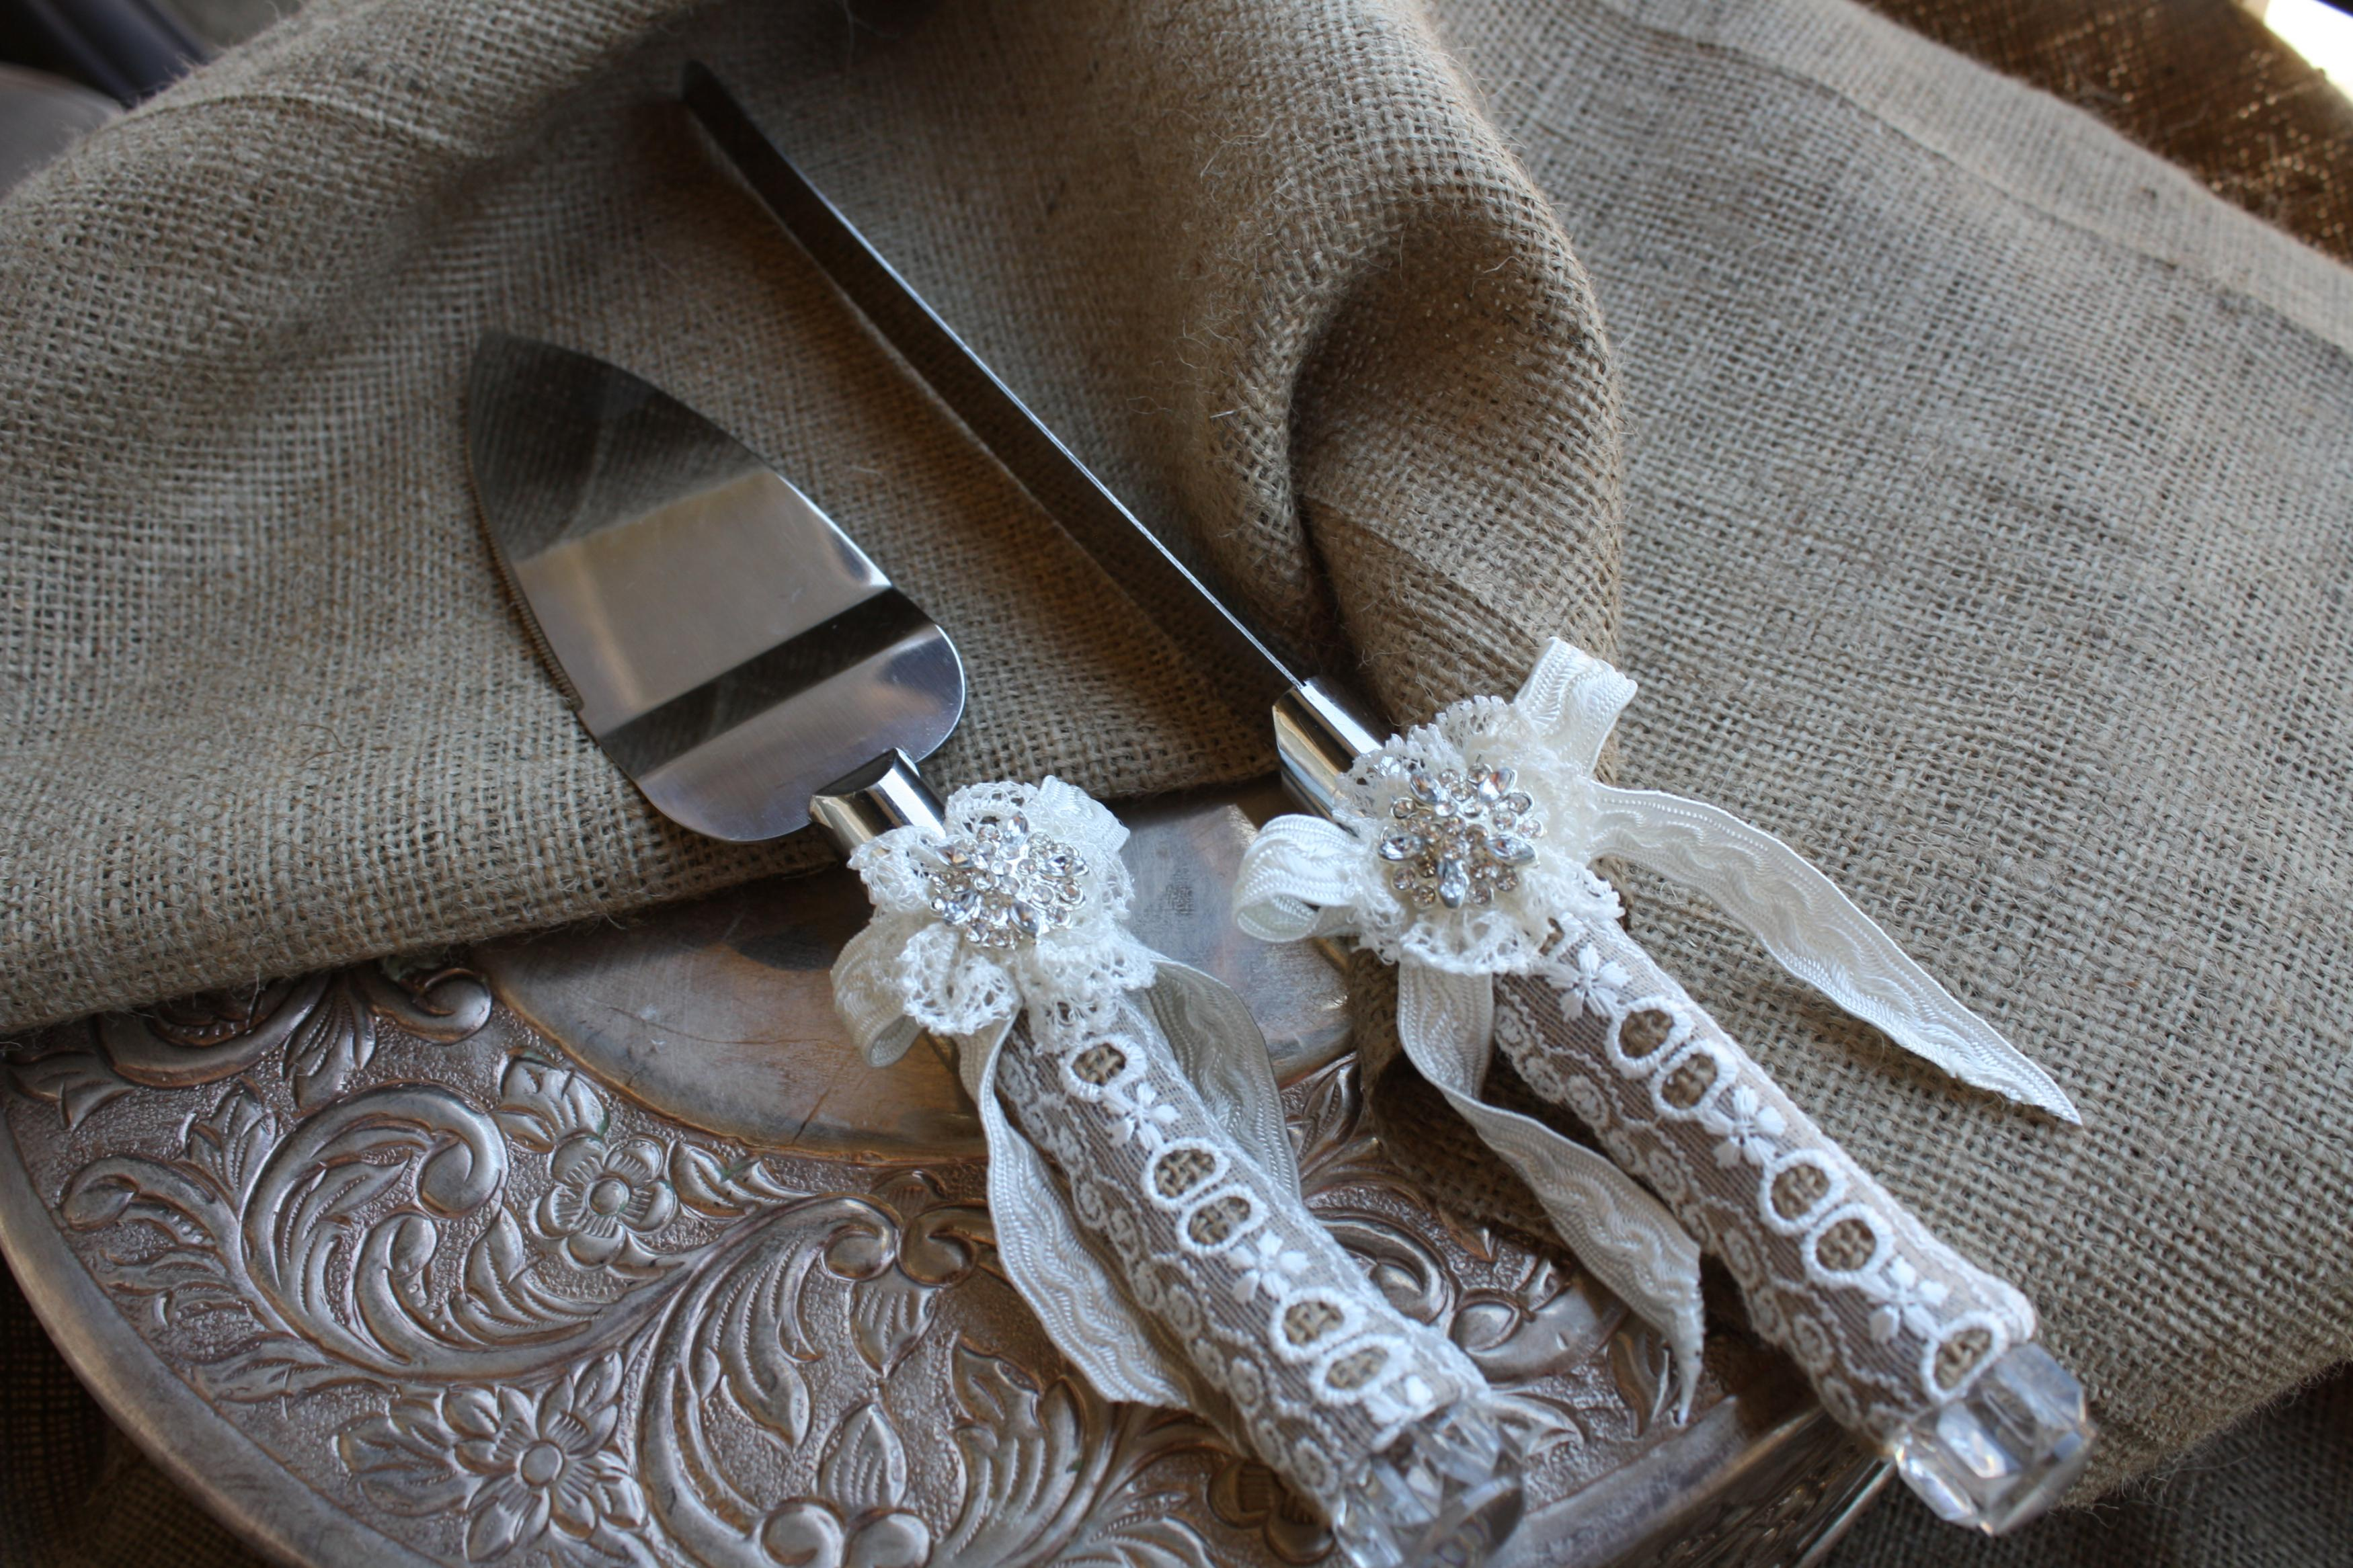 Wedding Cake Server And Knife Set Country Rustic Chic Wedding Cake